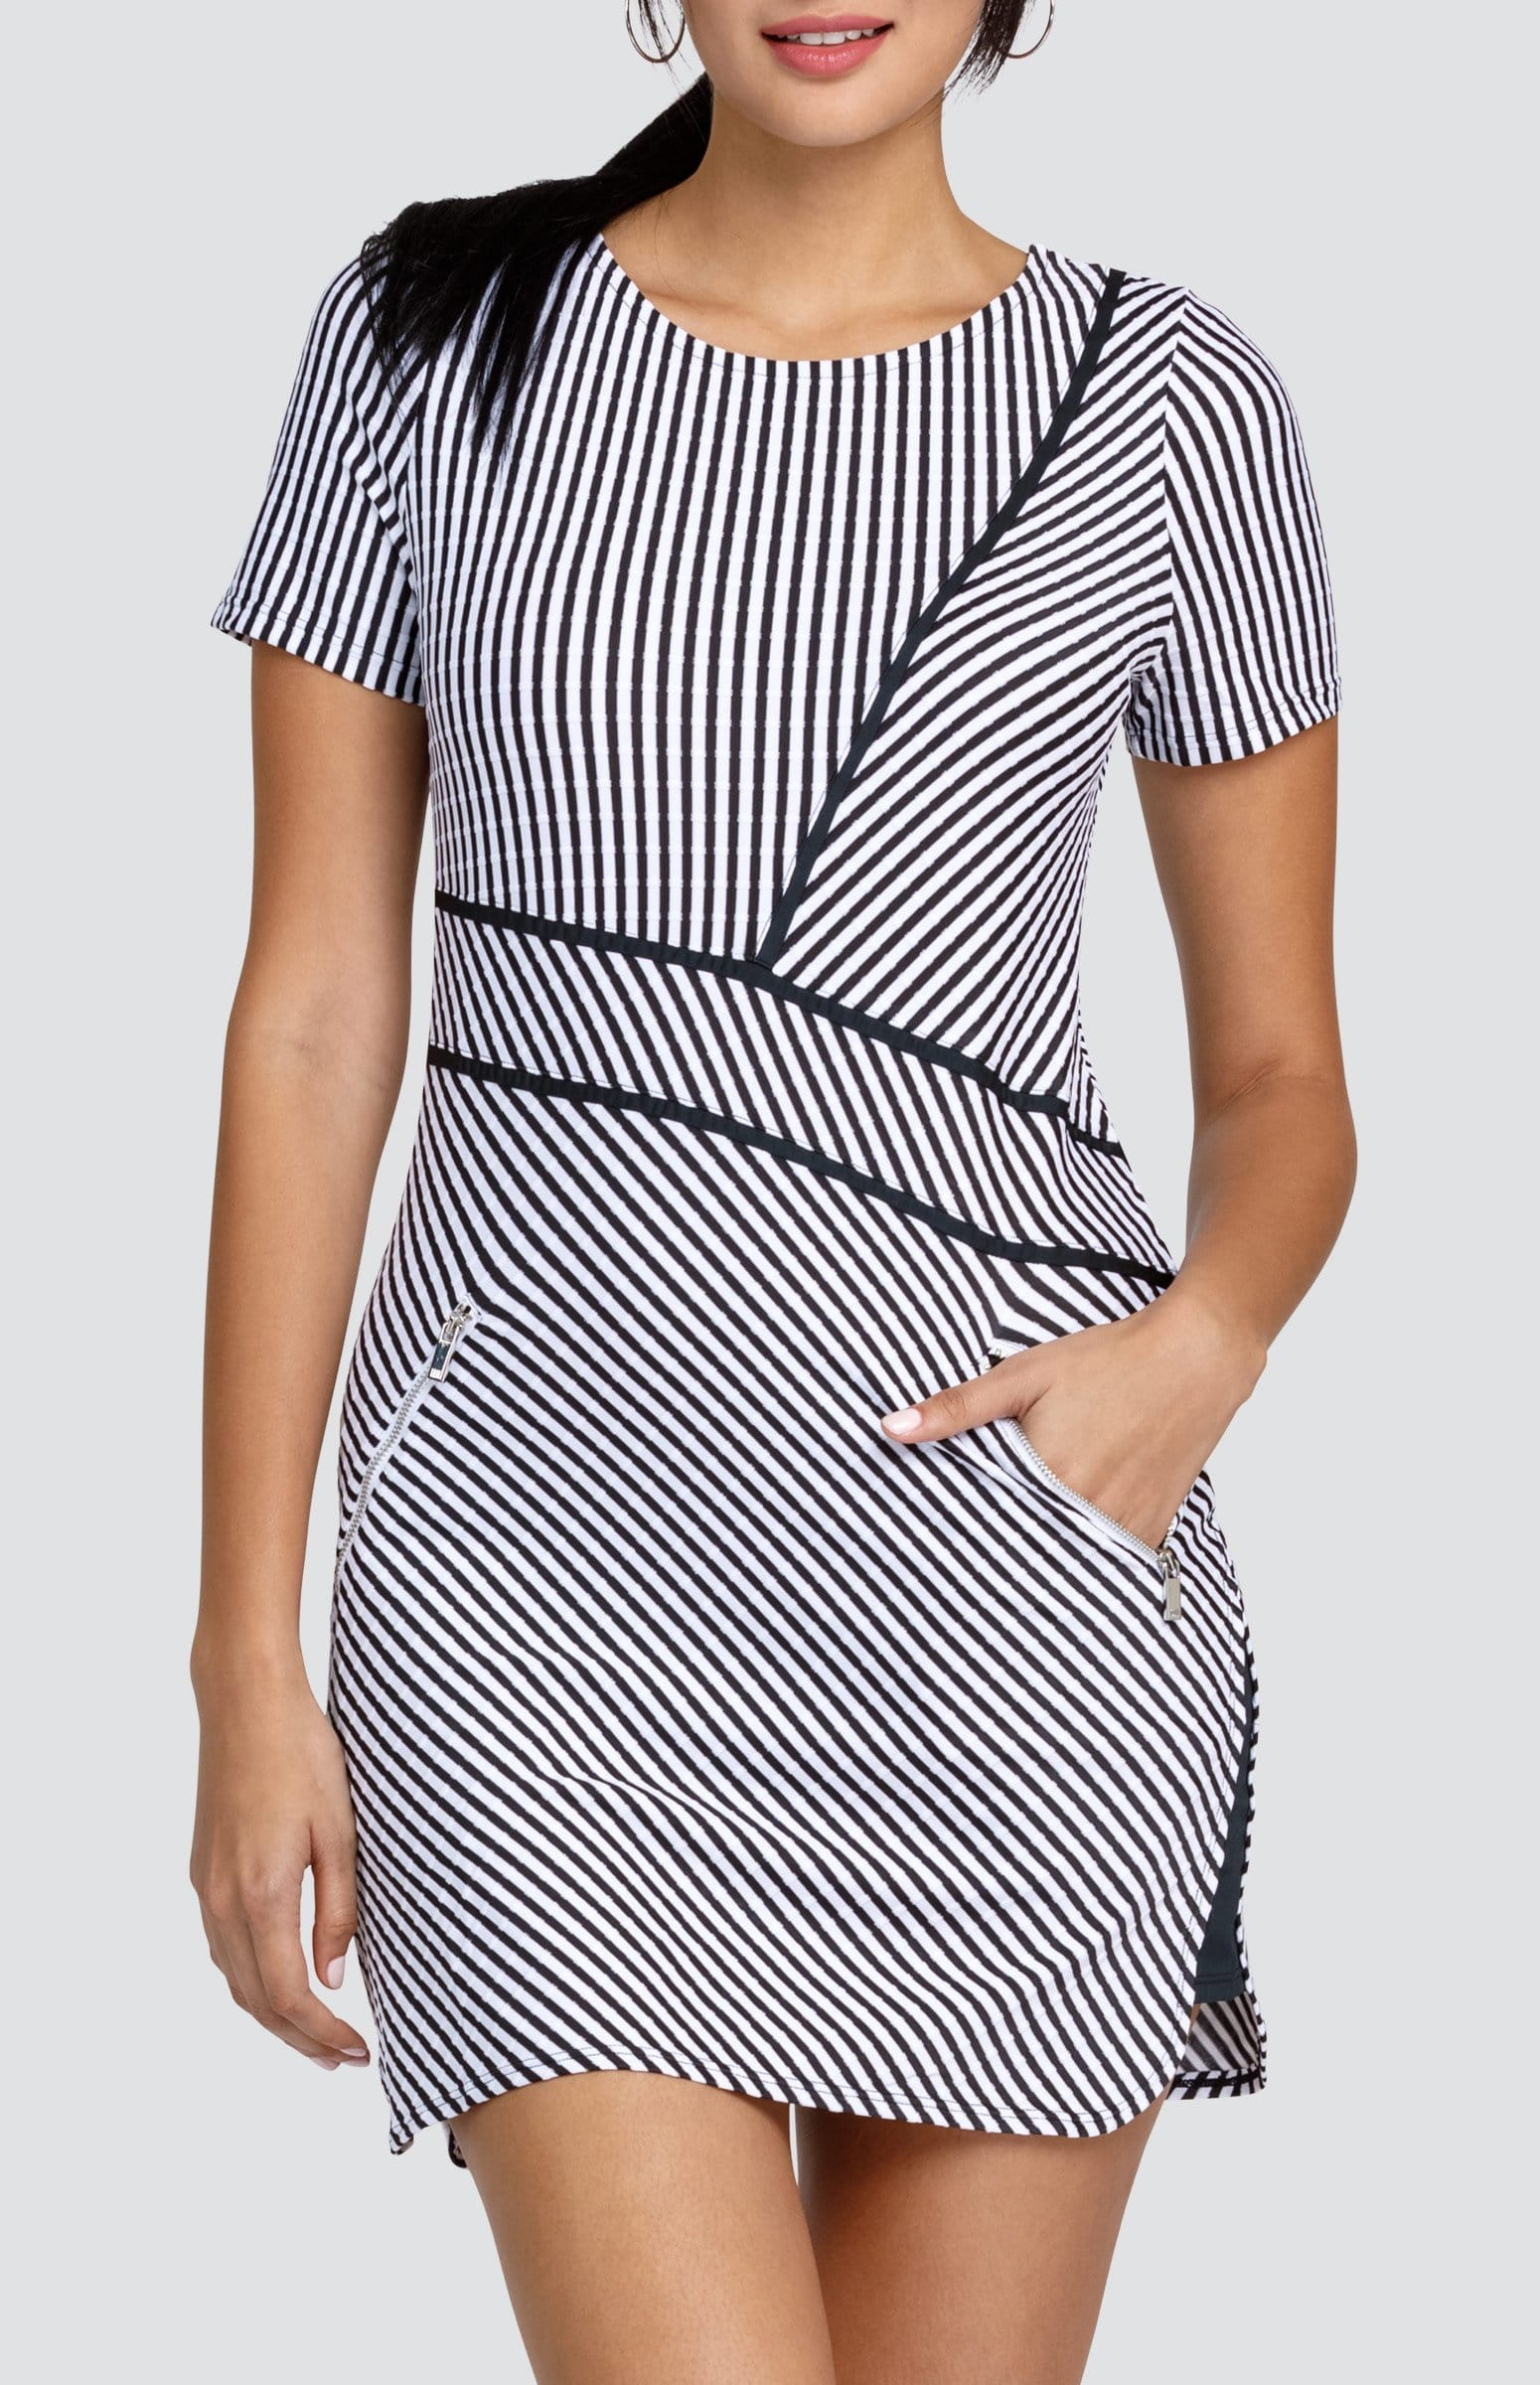 Lilyanna Dress - Stripe Jacquard